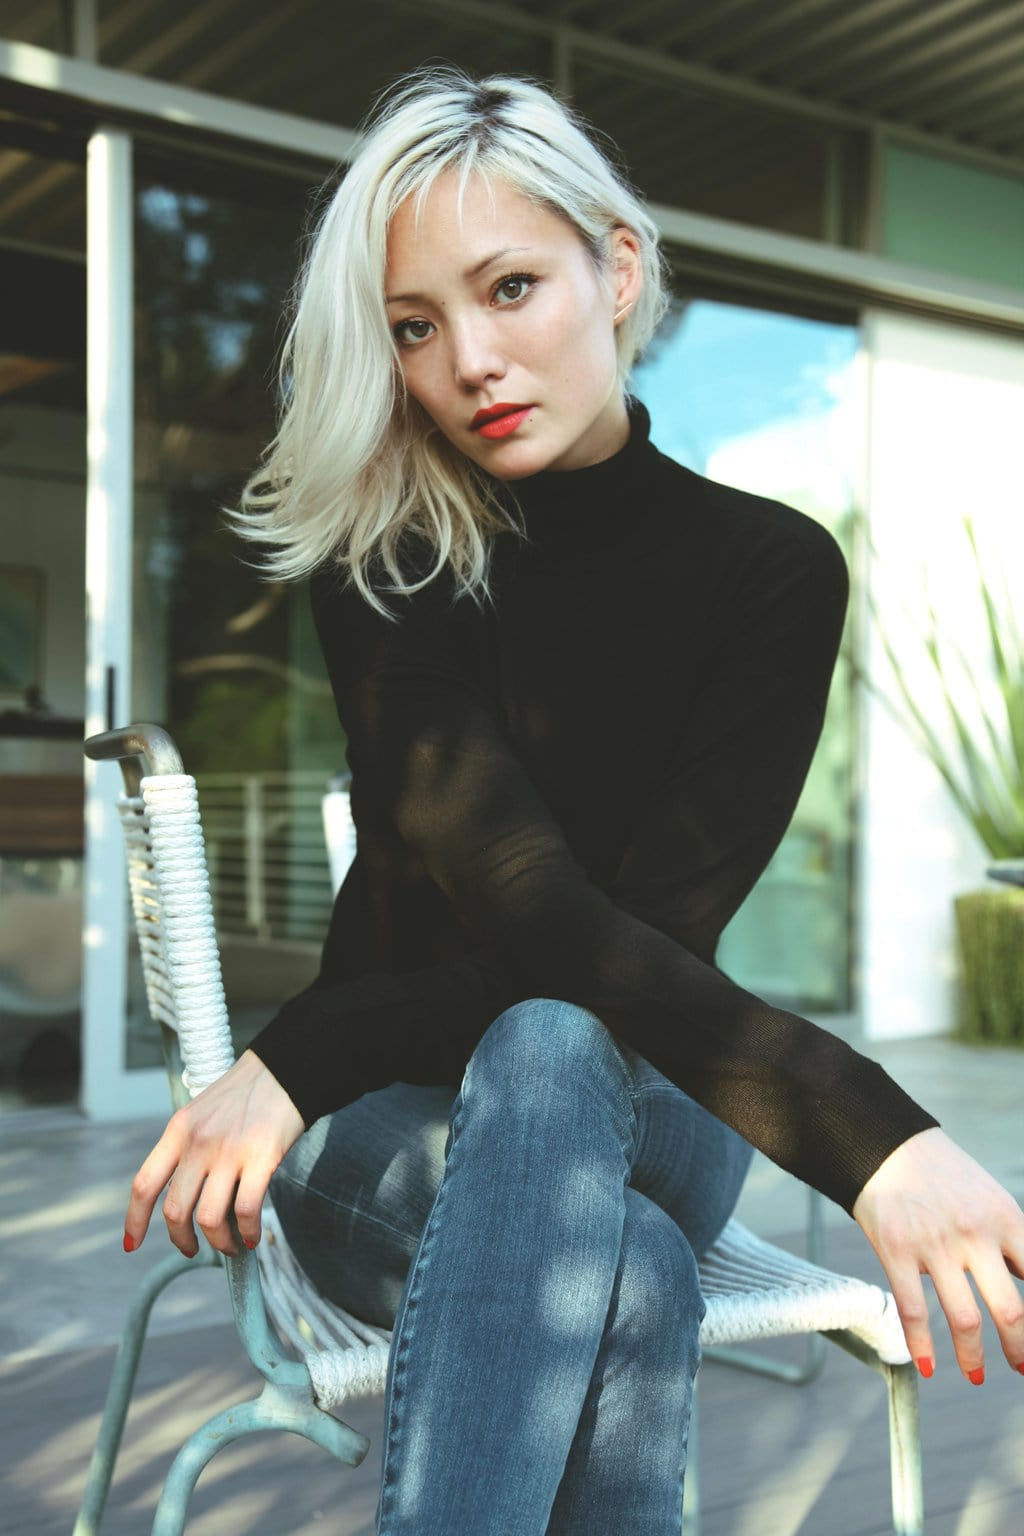 Awesome Beautiful Cute Wallpapers Hot Pom Klementieff Photos Nude Pom Klementieff Barnorama